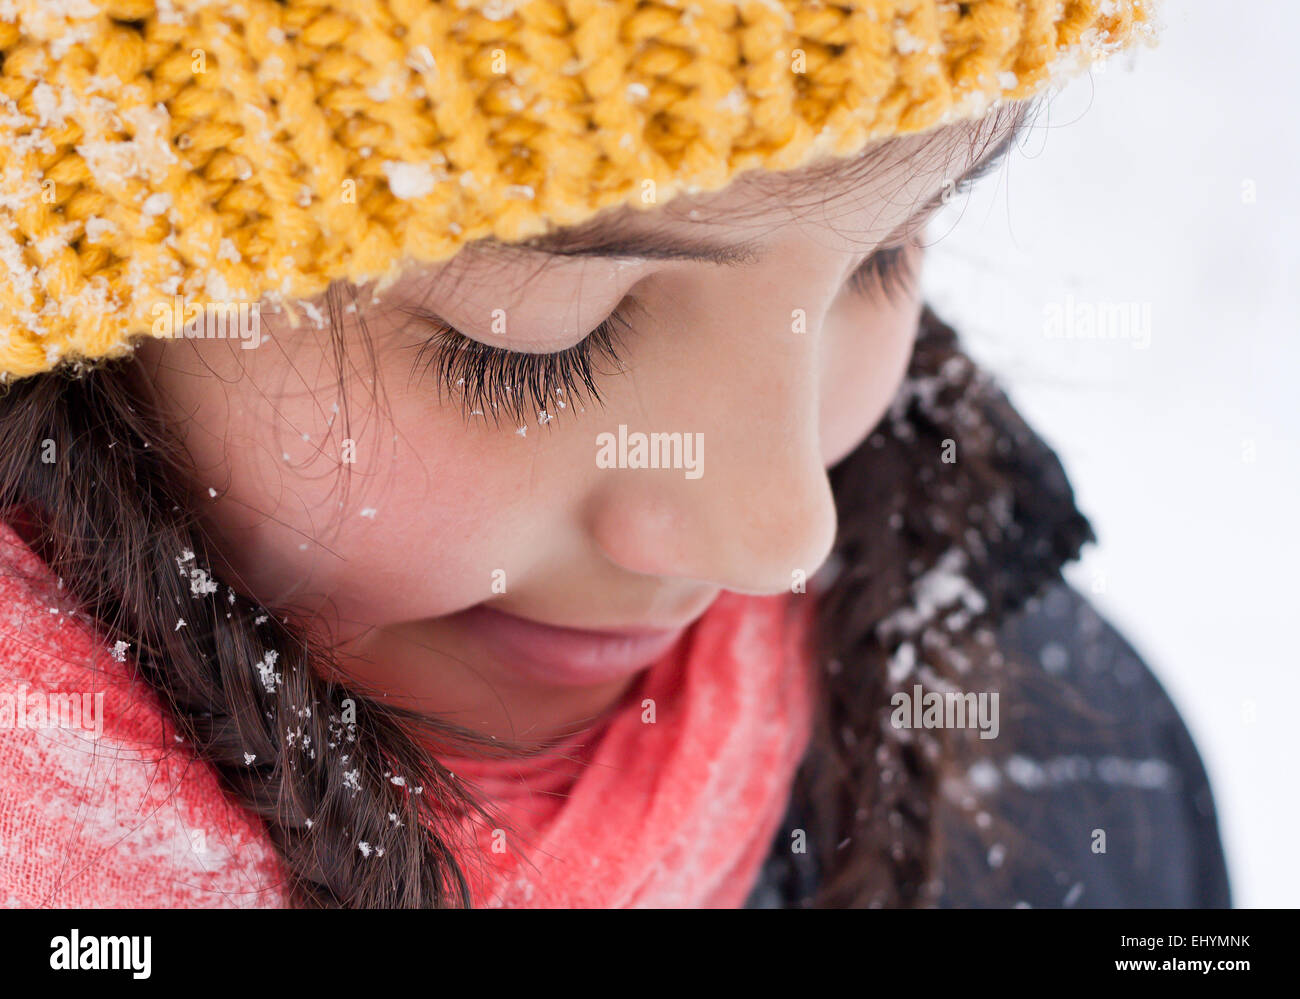 Close up portrait of  girl looking down - Stock Image